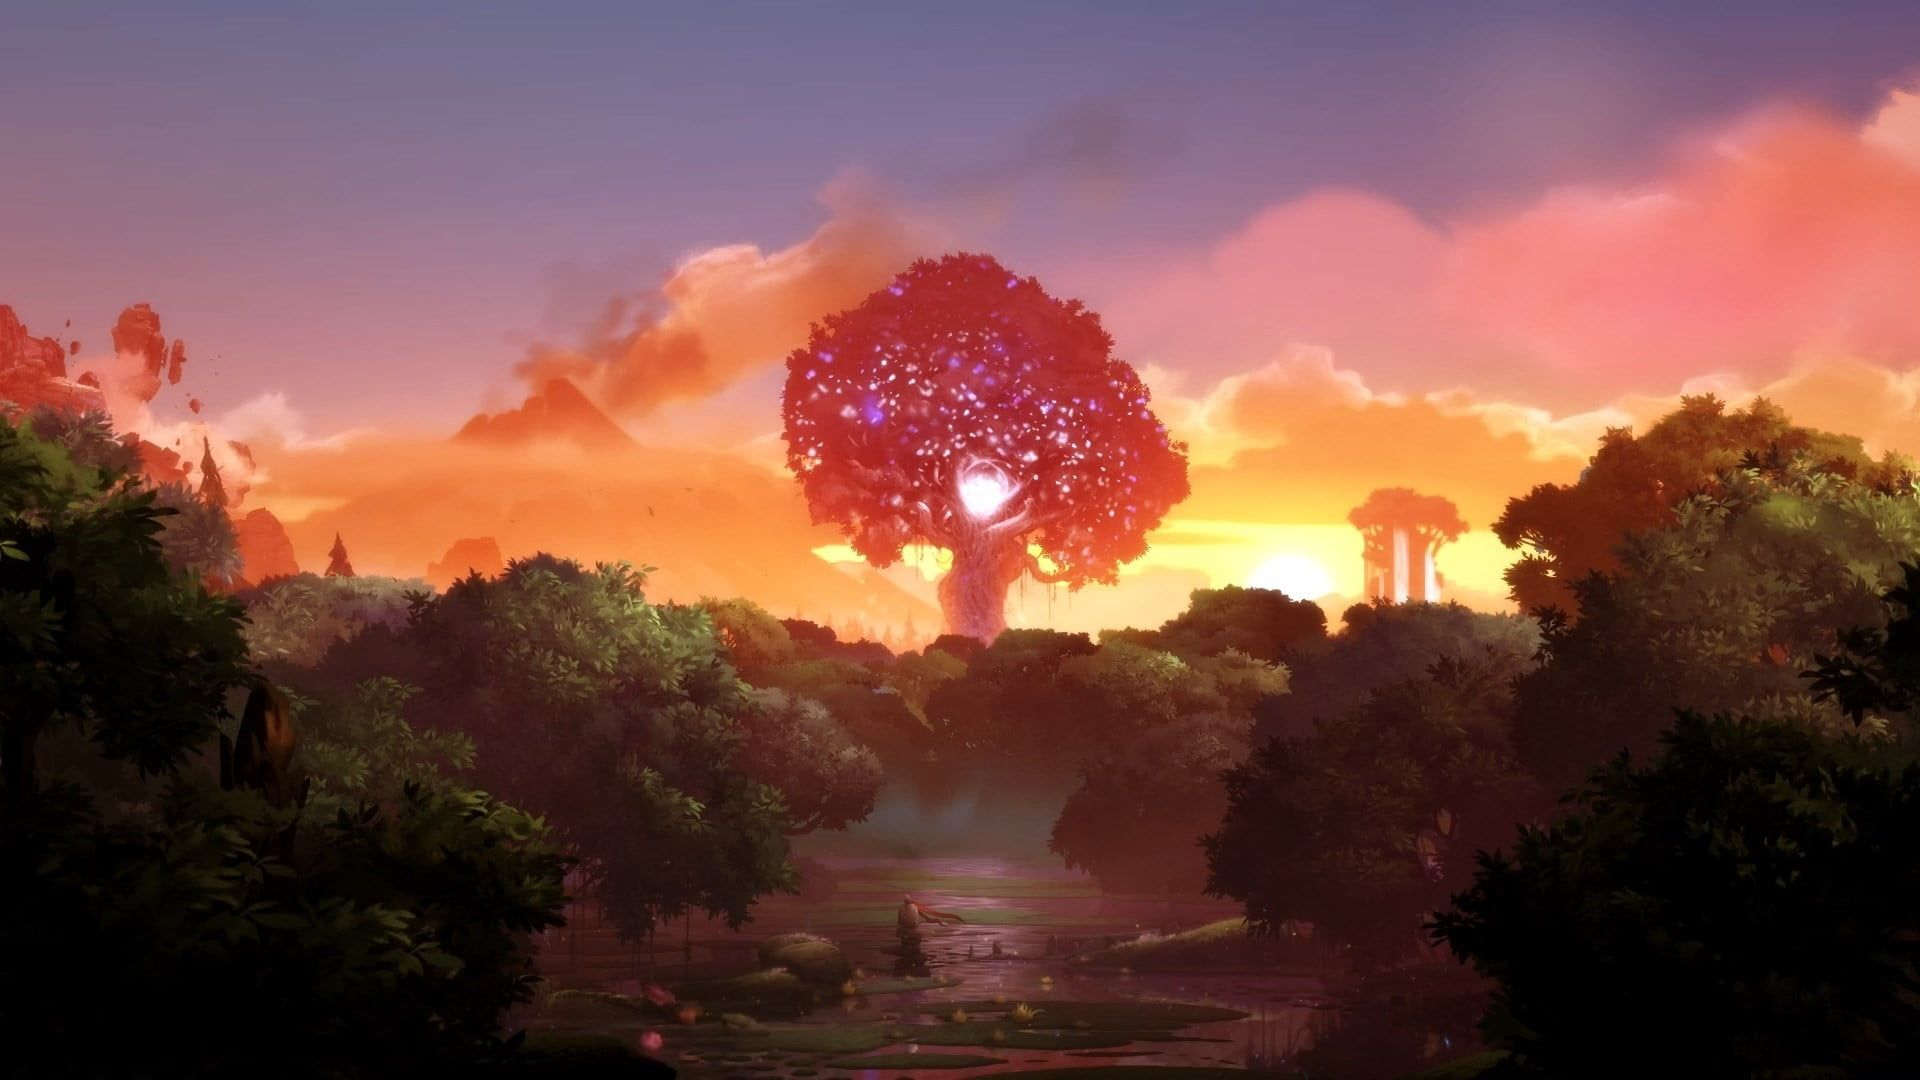 Green Tree Landscape Ori Ori And The Blind Forest 1080p Wallpaper Hdwallpaper Desktop World Of Warcraft Wallpaper Cool Wallpapers For Pc Cool Wallpaper